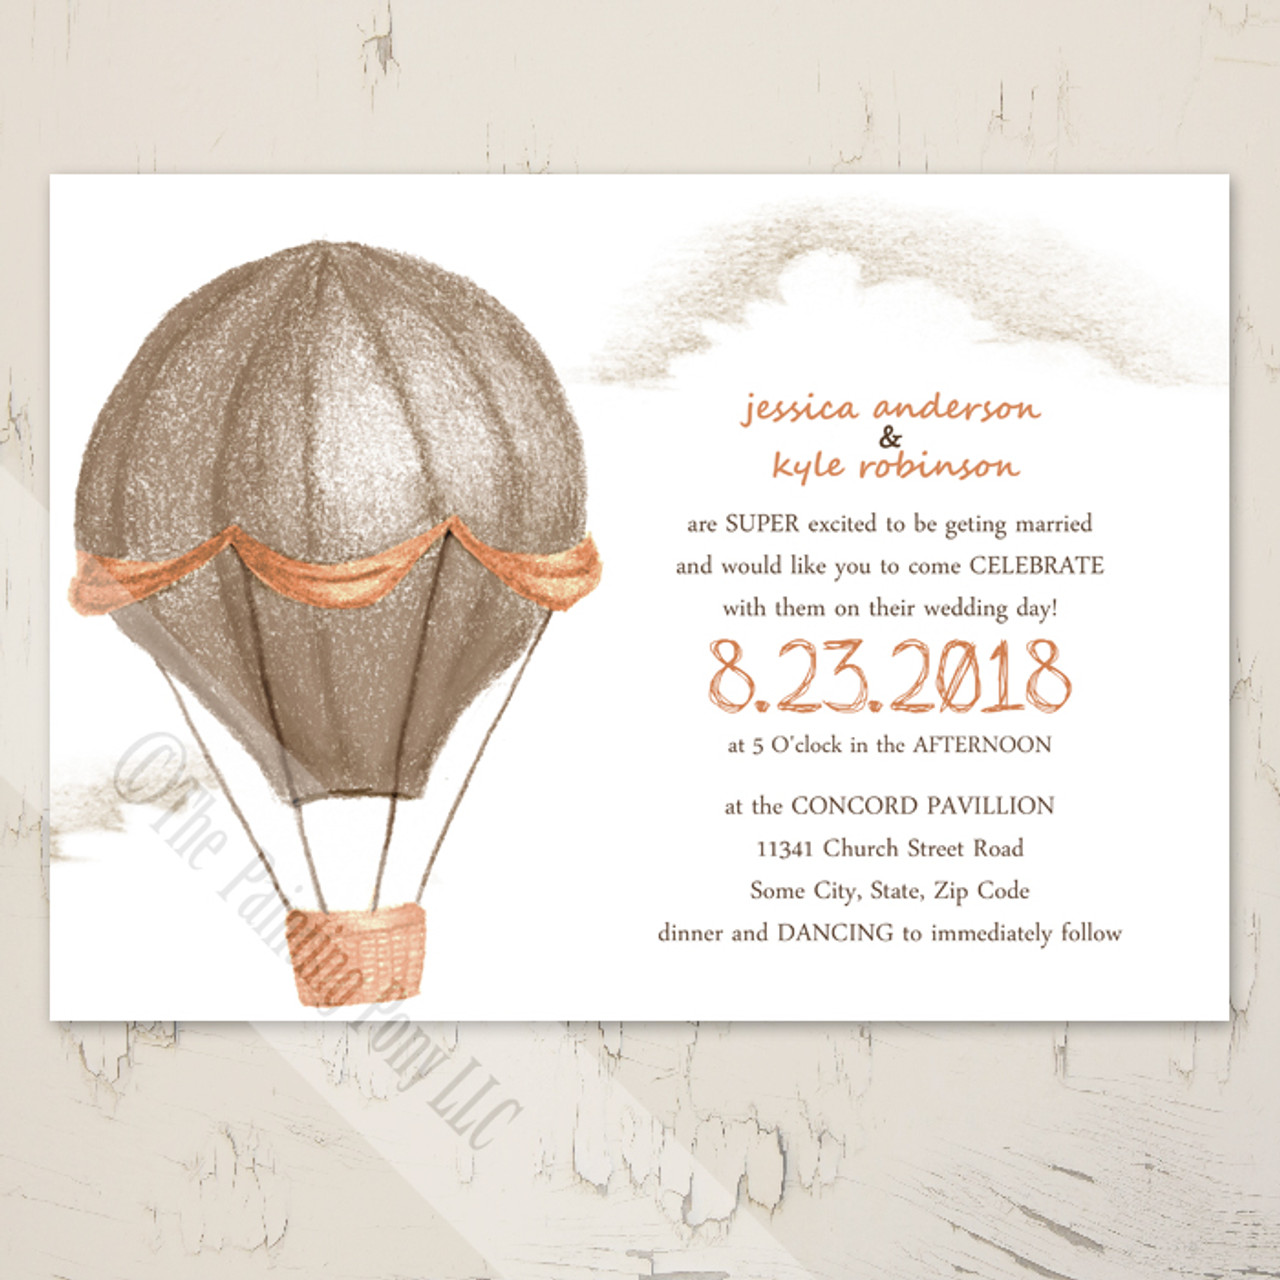 Hot Air Balloon Carnival Wedding Invitation (10 Pk)